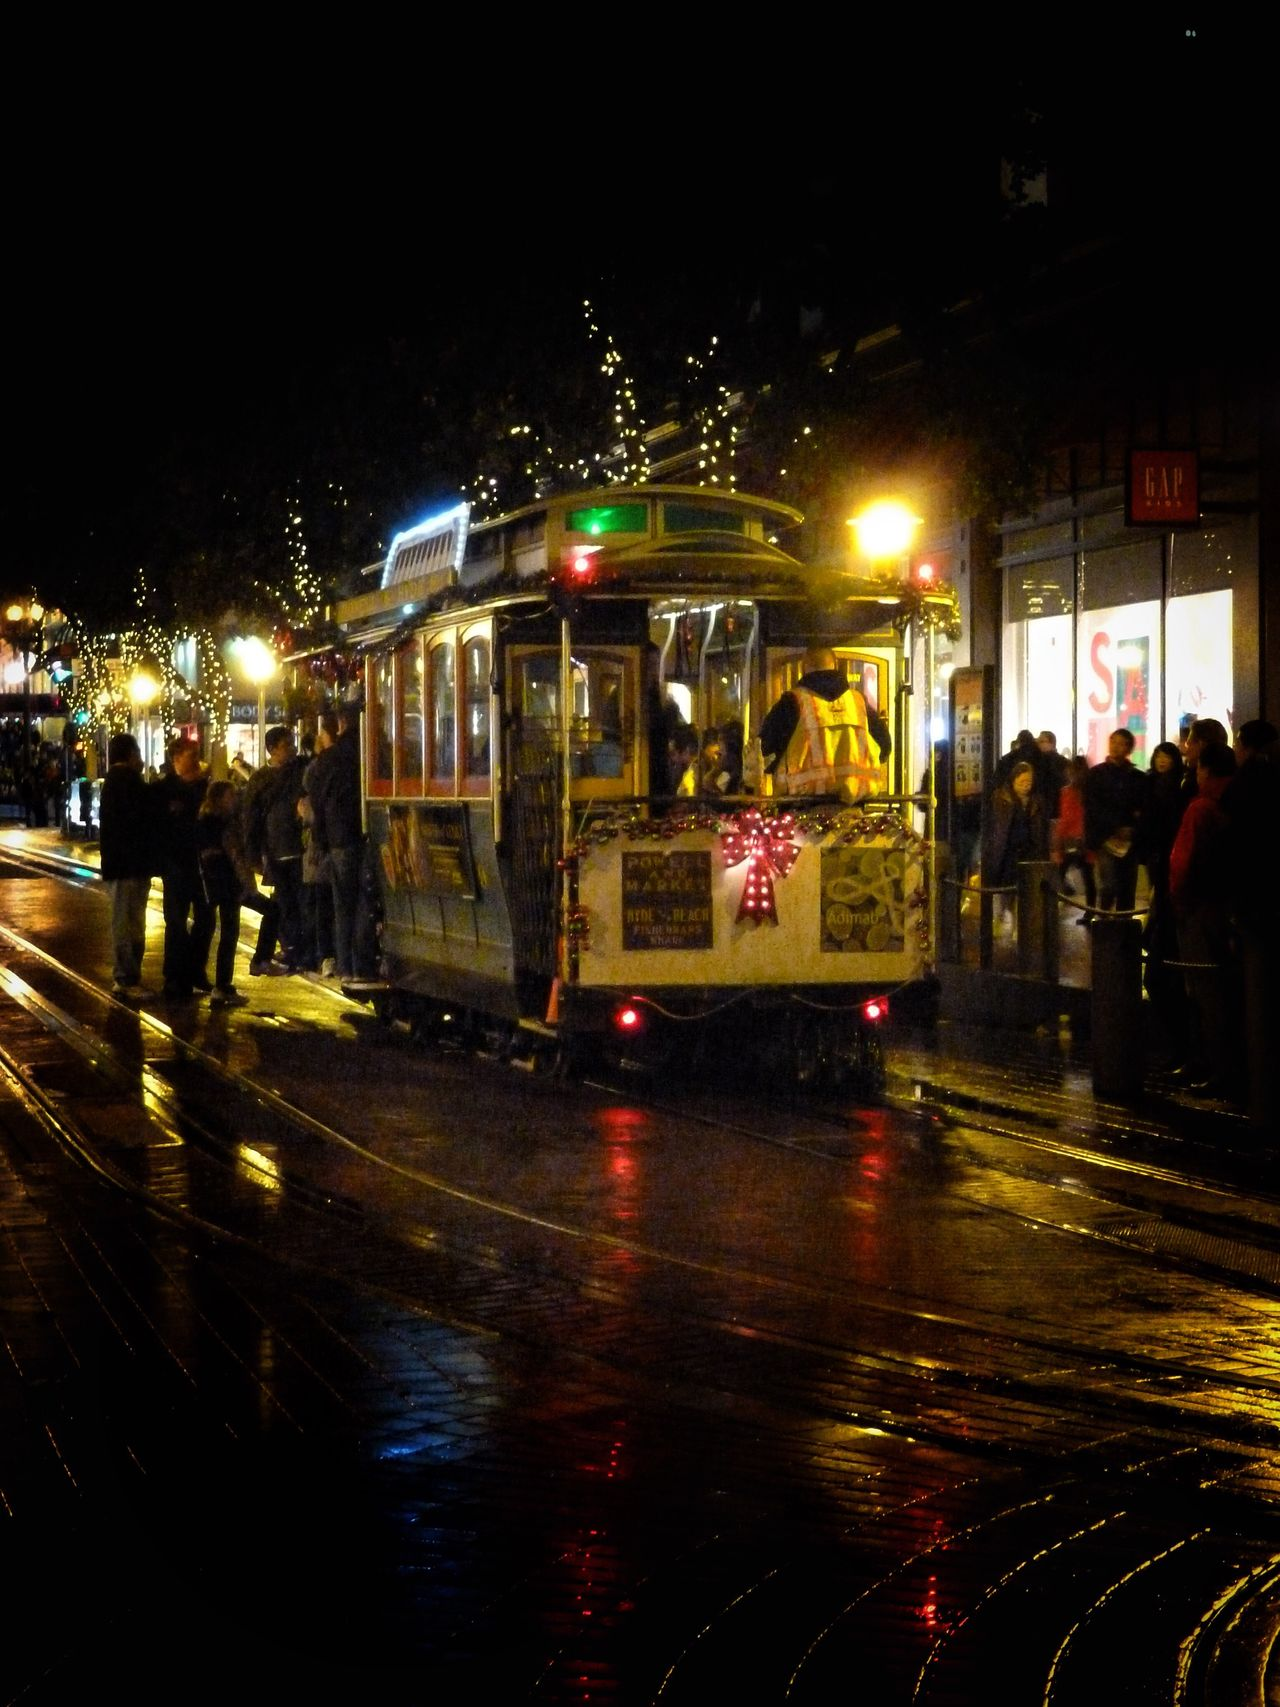 Night Street Illuminated Built Structure Architecture Building Exterior City Outdoors Cable Car San Francisco Rain Reflection Christmastime Christmas Lights Check This Out